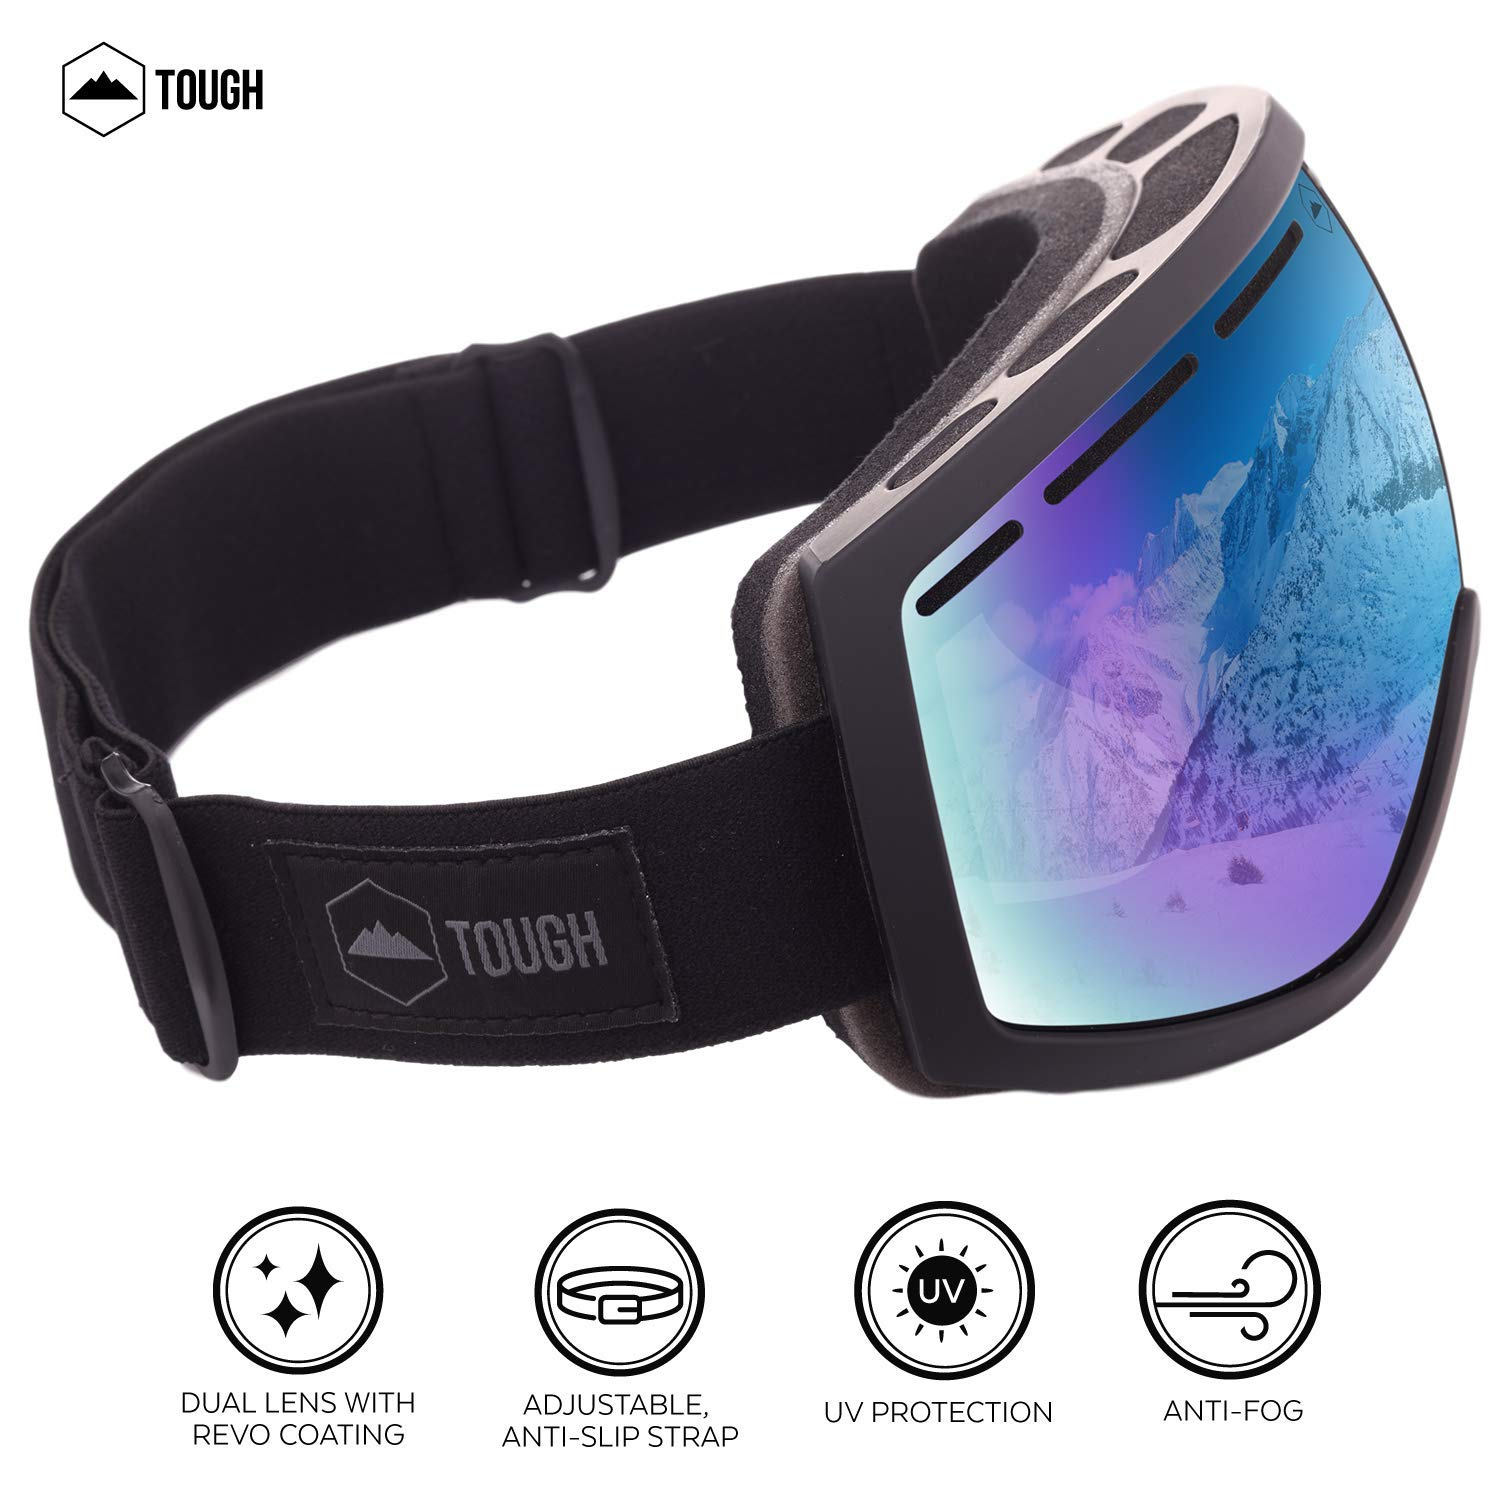 UV400 Protection Dual-Layer Lens Snow Goggles for Skiing Women /& Youth Fits Men Anti-Fog and Helmet Compatible Snowboarding Motorcycling /& Winter Sports Ski /& Snowboard Goggles